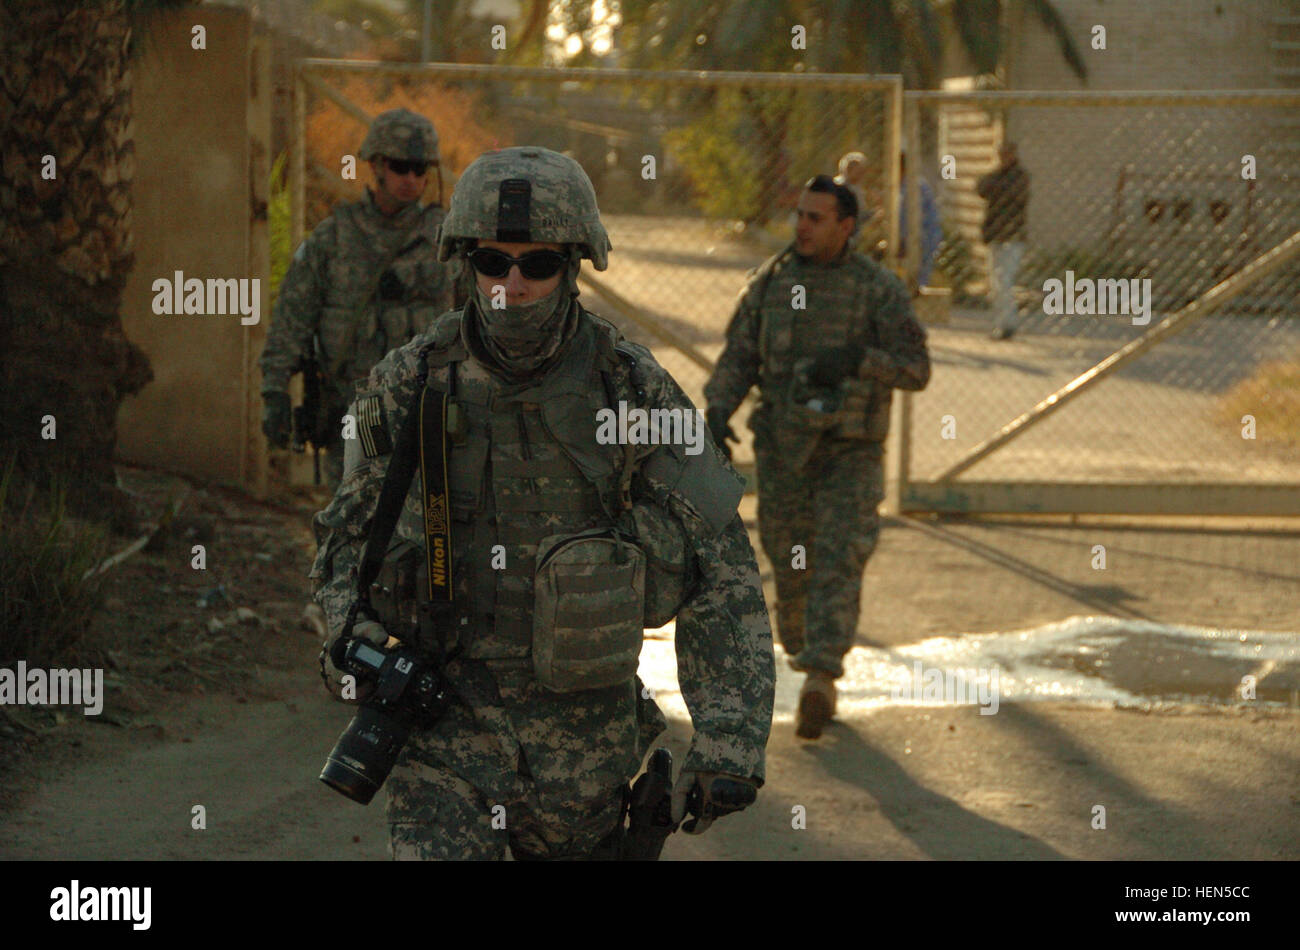 Harga Niion Waister Camo Desert Termurah 2018 Hipbag Navy C Exits Stock Photos Images Alamy Air Force Staff Sgt Jason Bailey